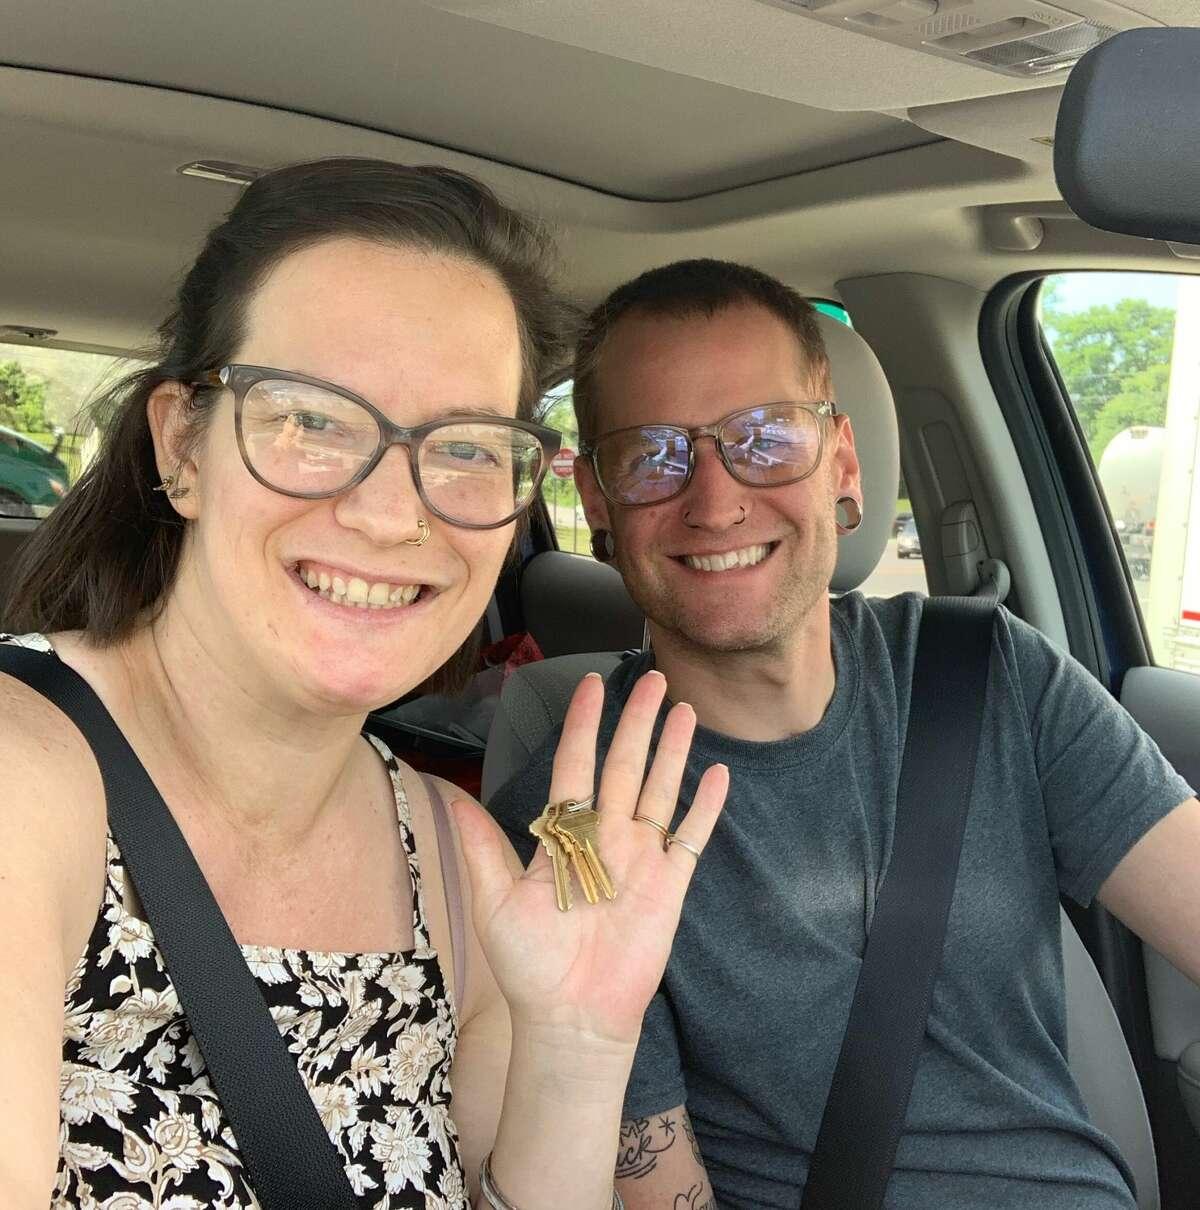 After a long, unsuccessful home search in Kingston, in part because of student debt that made the mortgage application process difficult, Elizabeth and Zac Carey began house hunting in the Capital region, where the millennial couple closed on a house in late June.